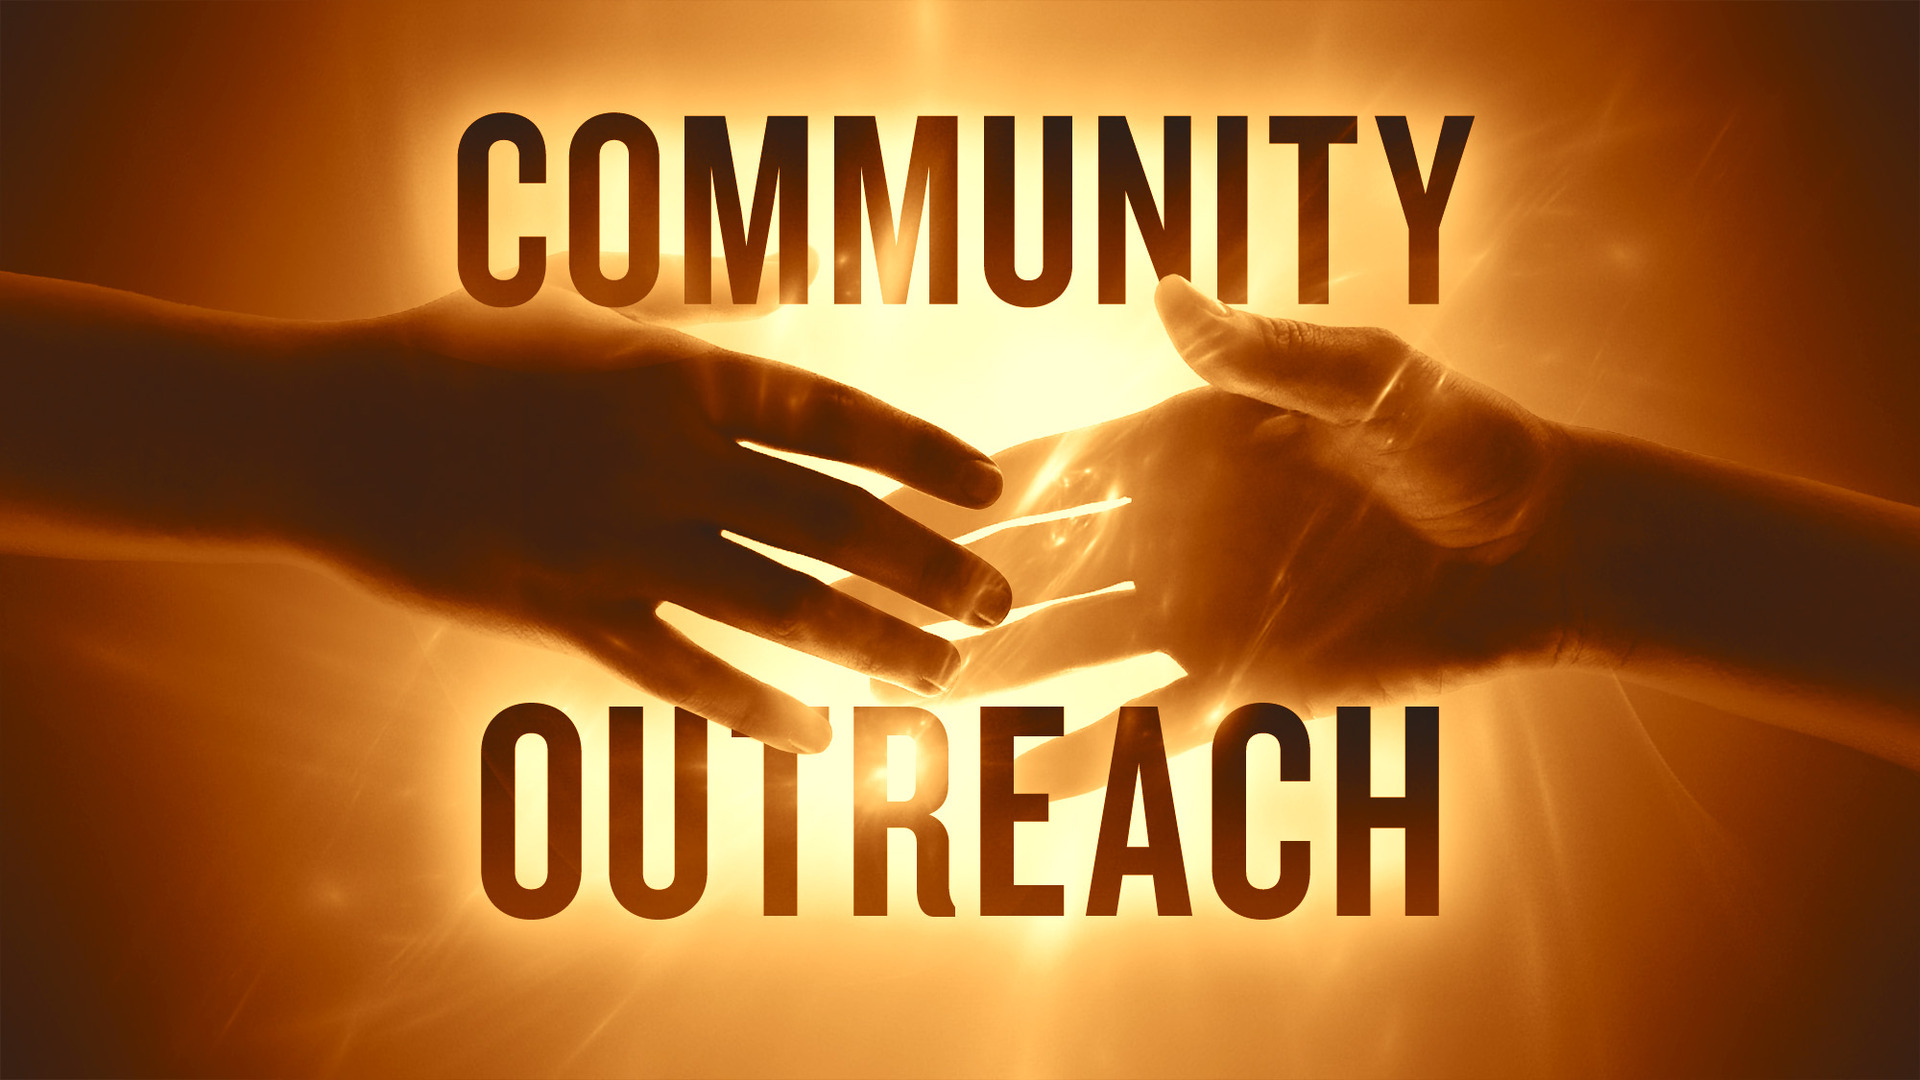 community_outreach-title-2-Wide 16x9.jpg